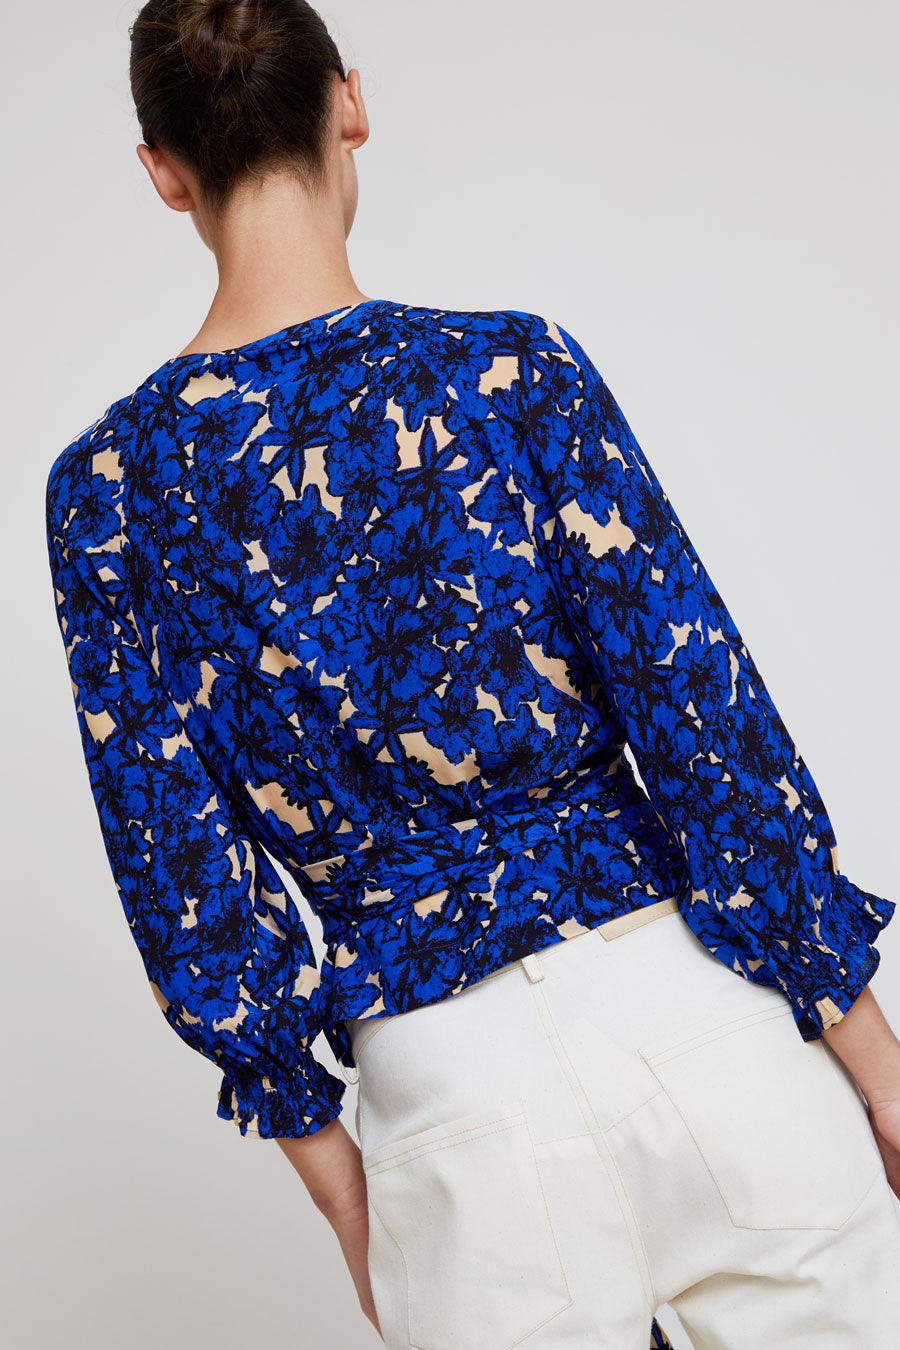 Rodebjer Sali Top in Intense Blue